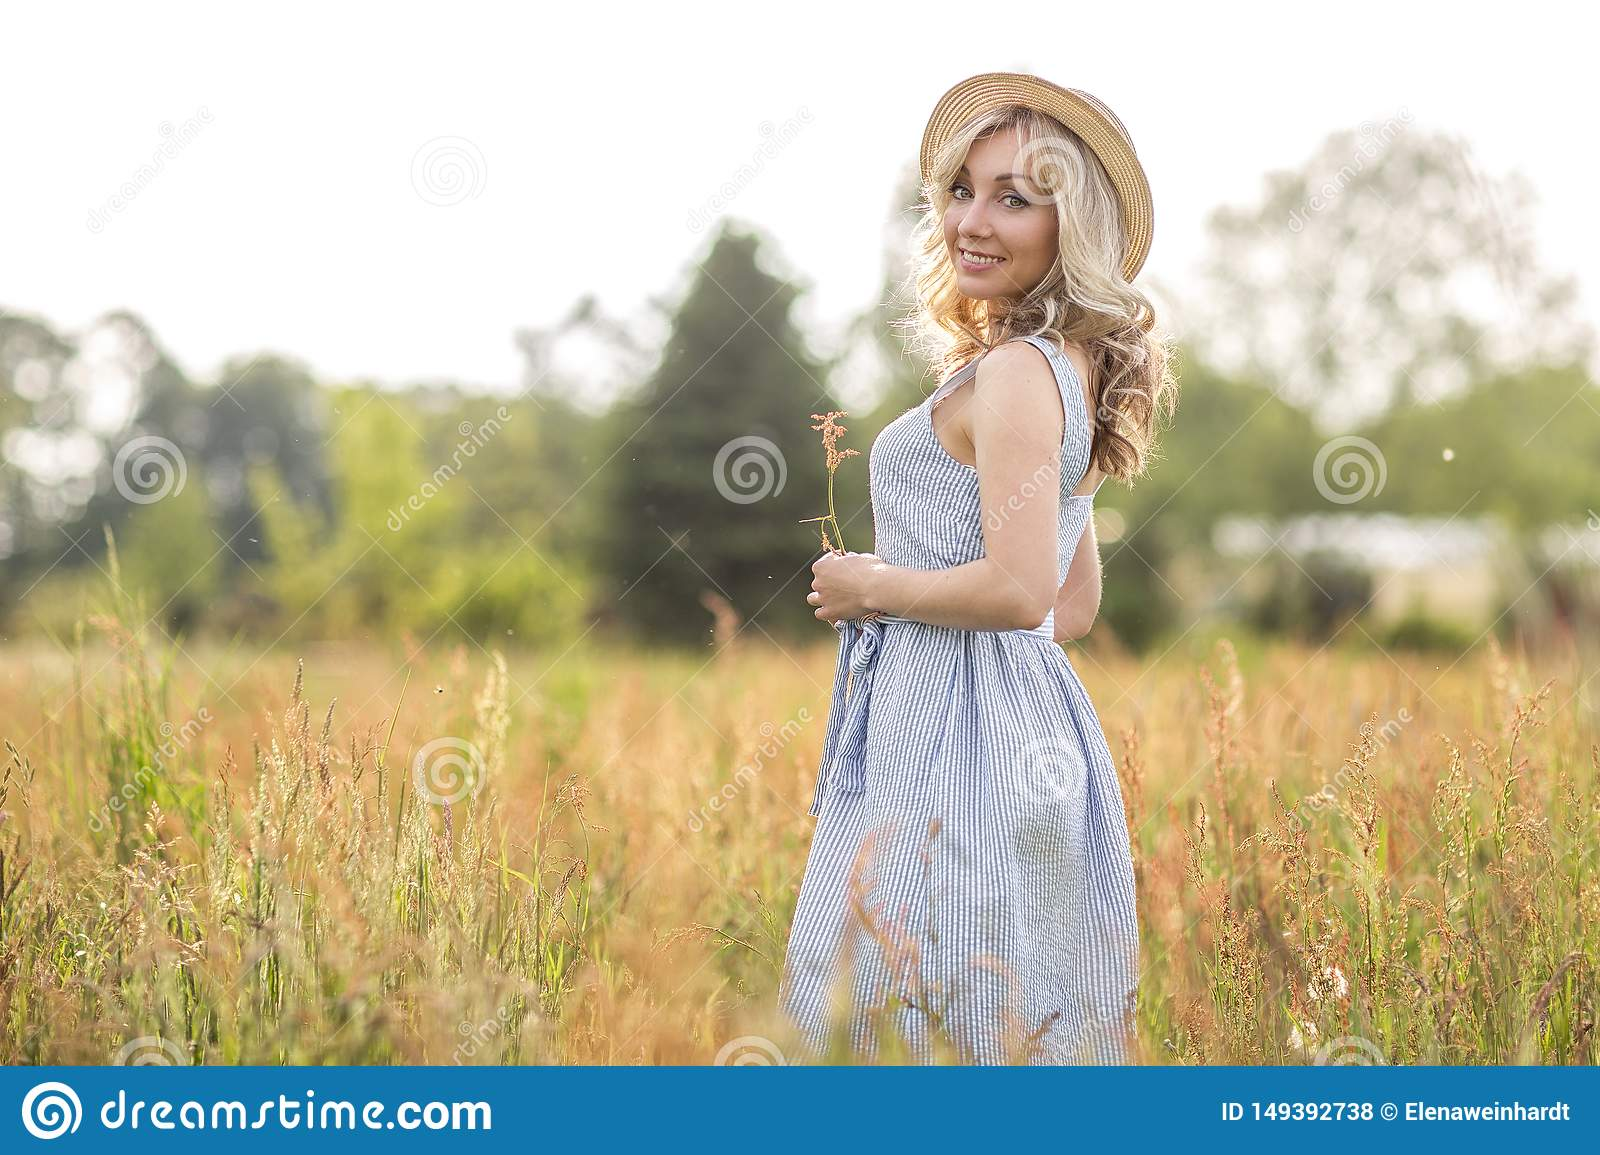 Rural, rural life. Walking through the meadow blonde young woman in a hat. Summertime